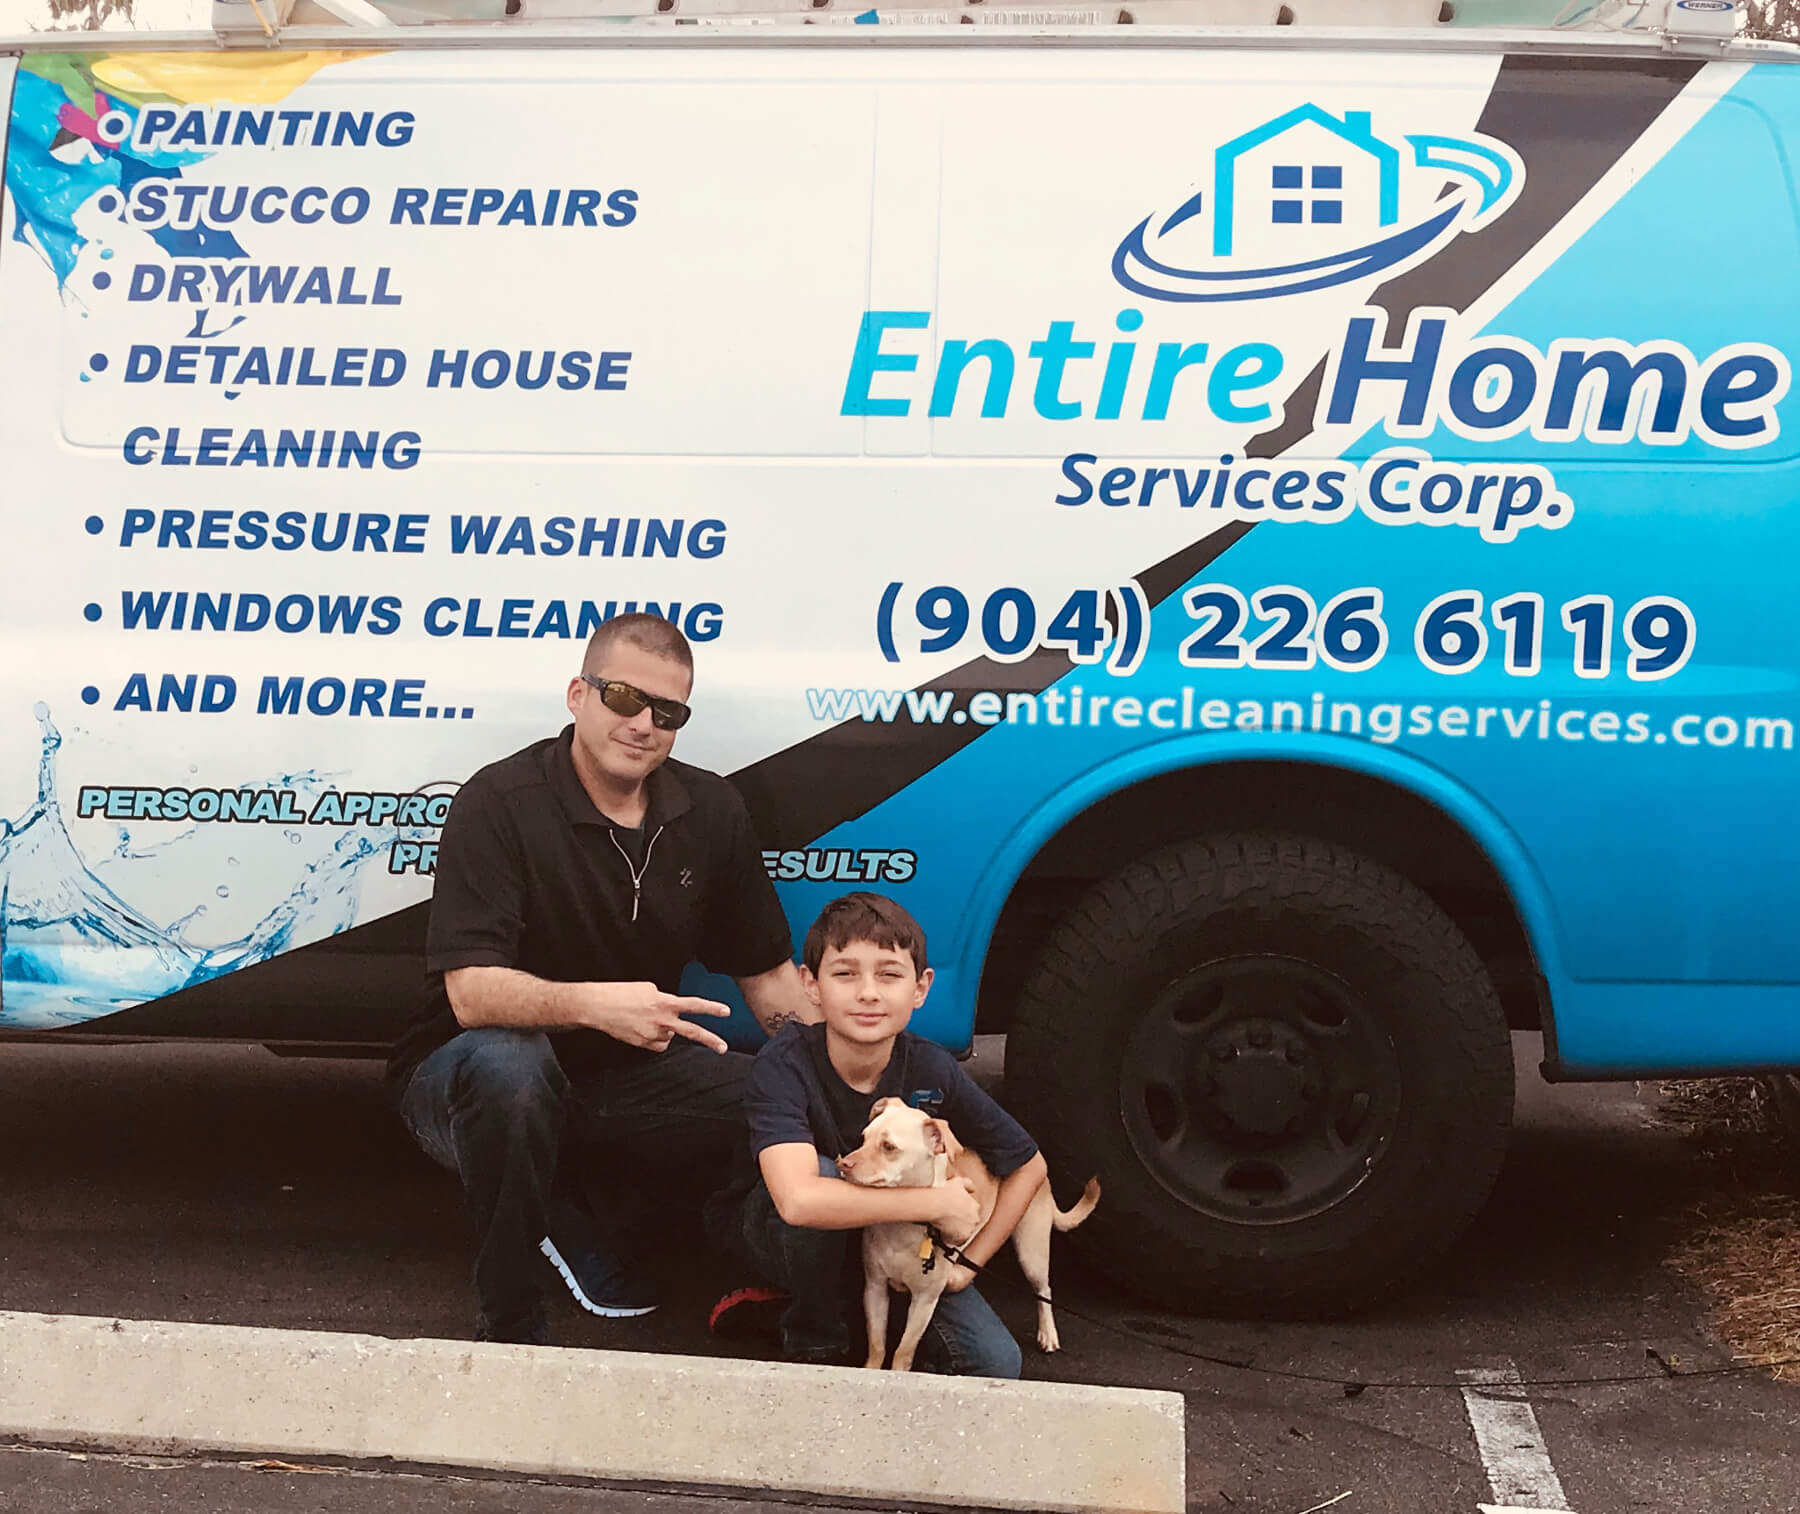 Entire Home Service Truck and Family